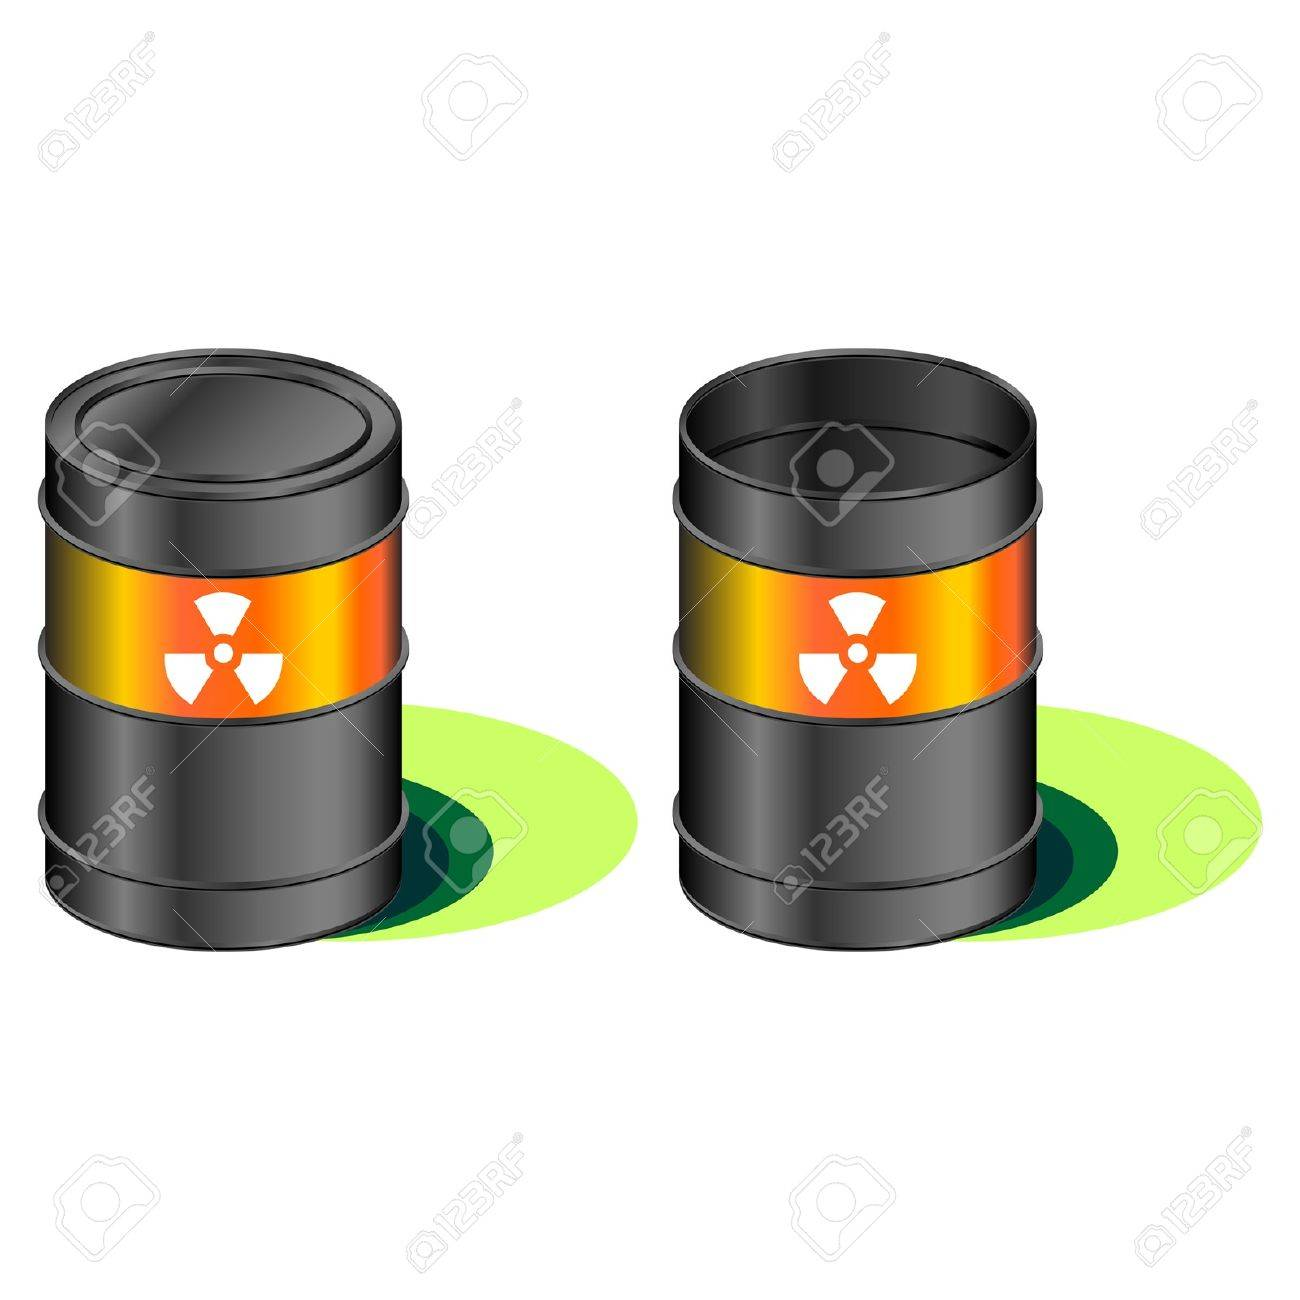 Open and closed barrels with radioactivity waste symbol Stock Vector - 9630406